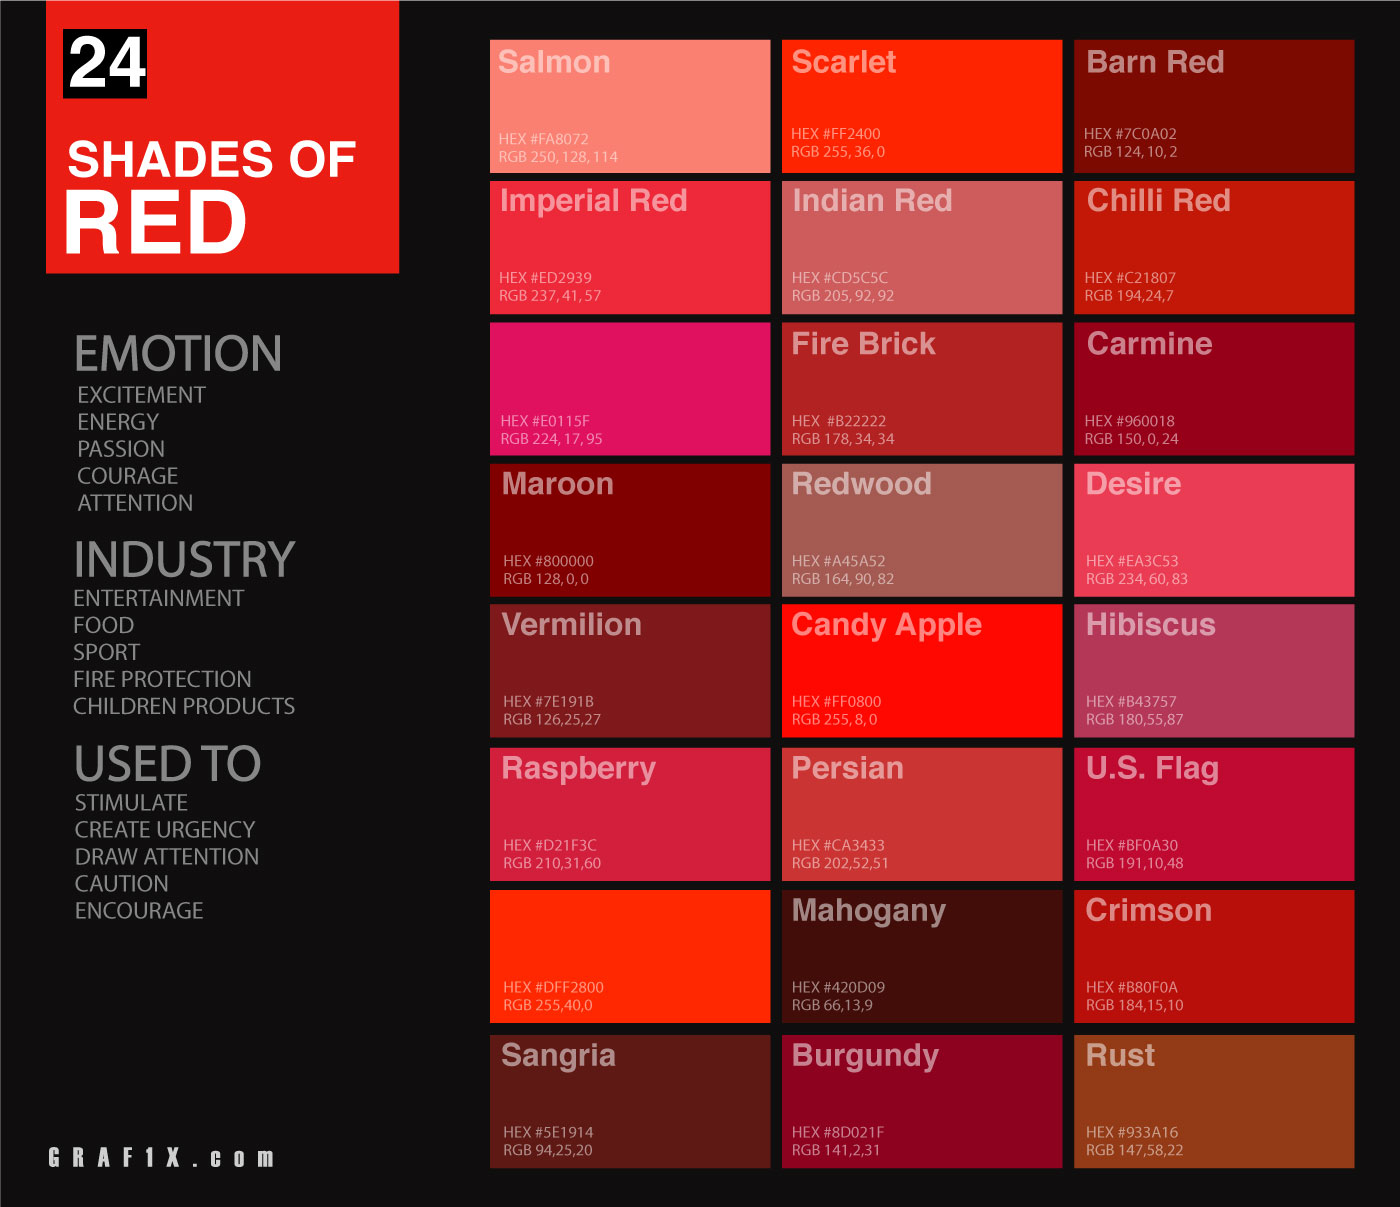 24 shades of red